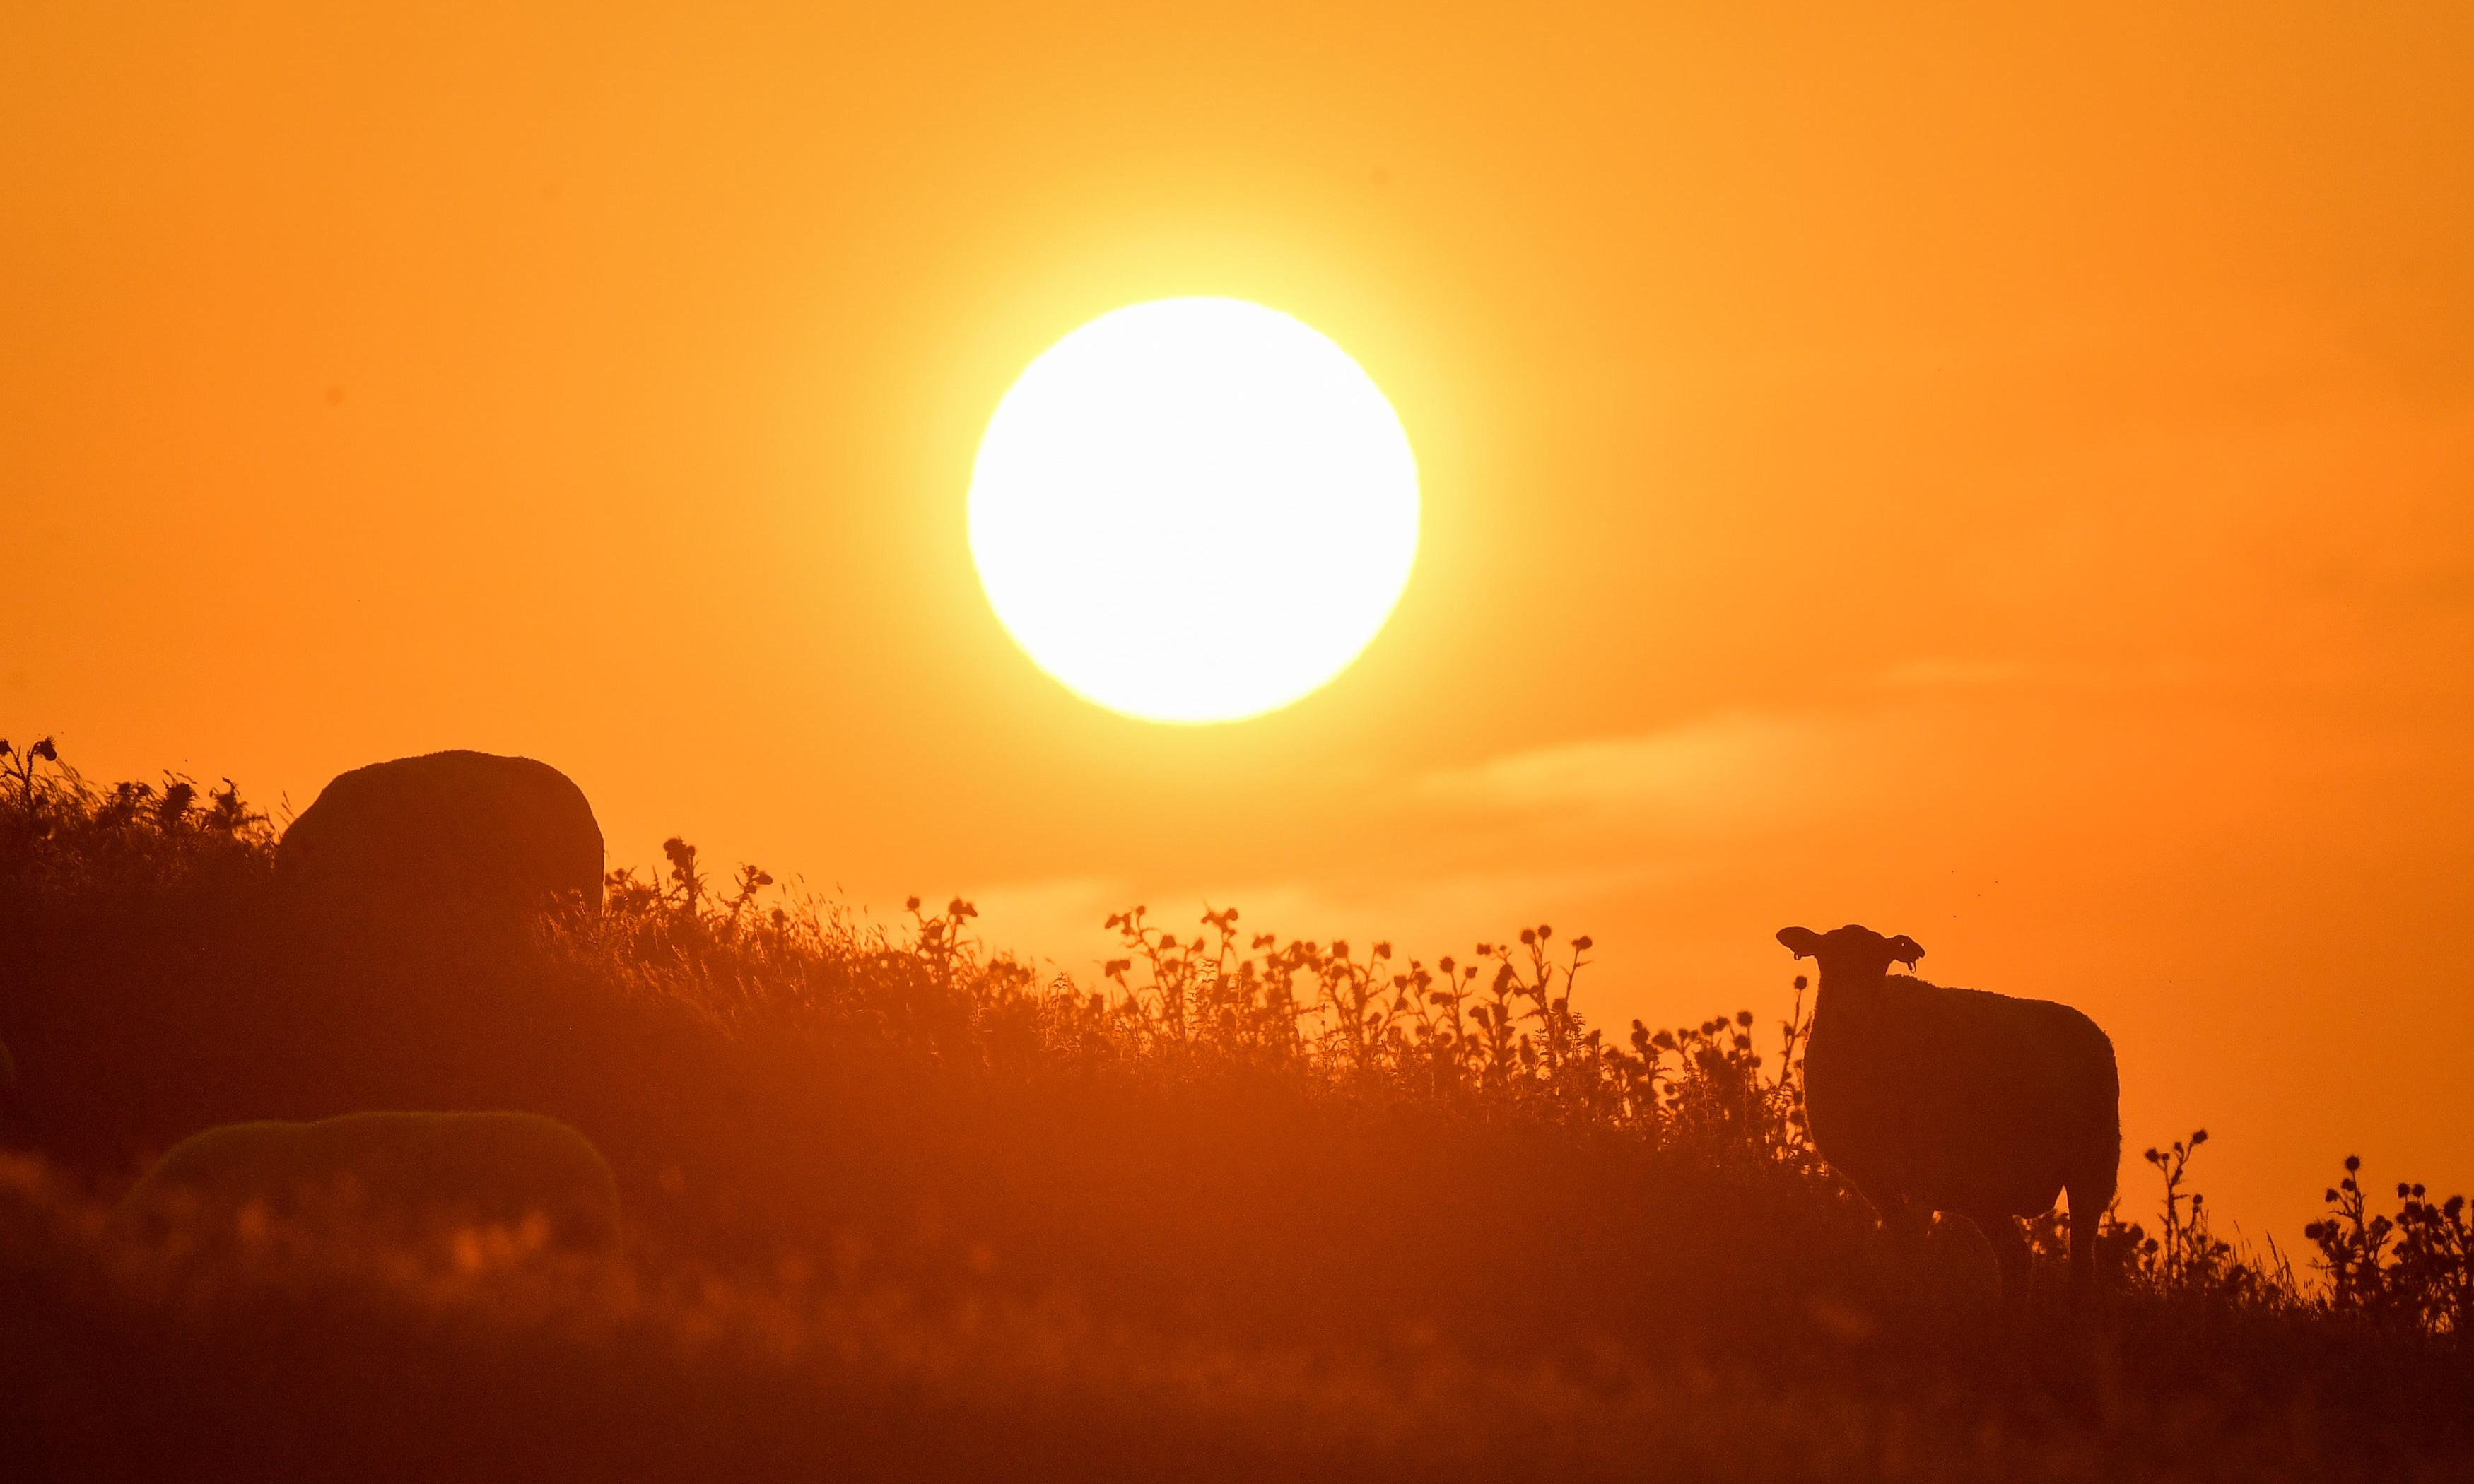 UK's hottest recorded day 'caused deaths of extra 200 people'